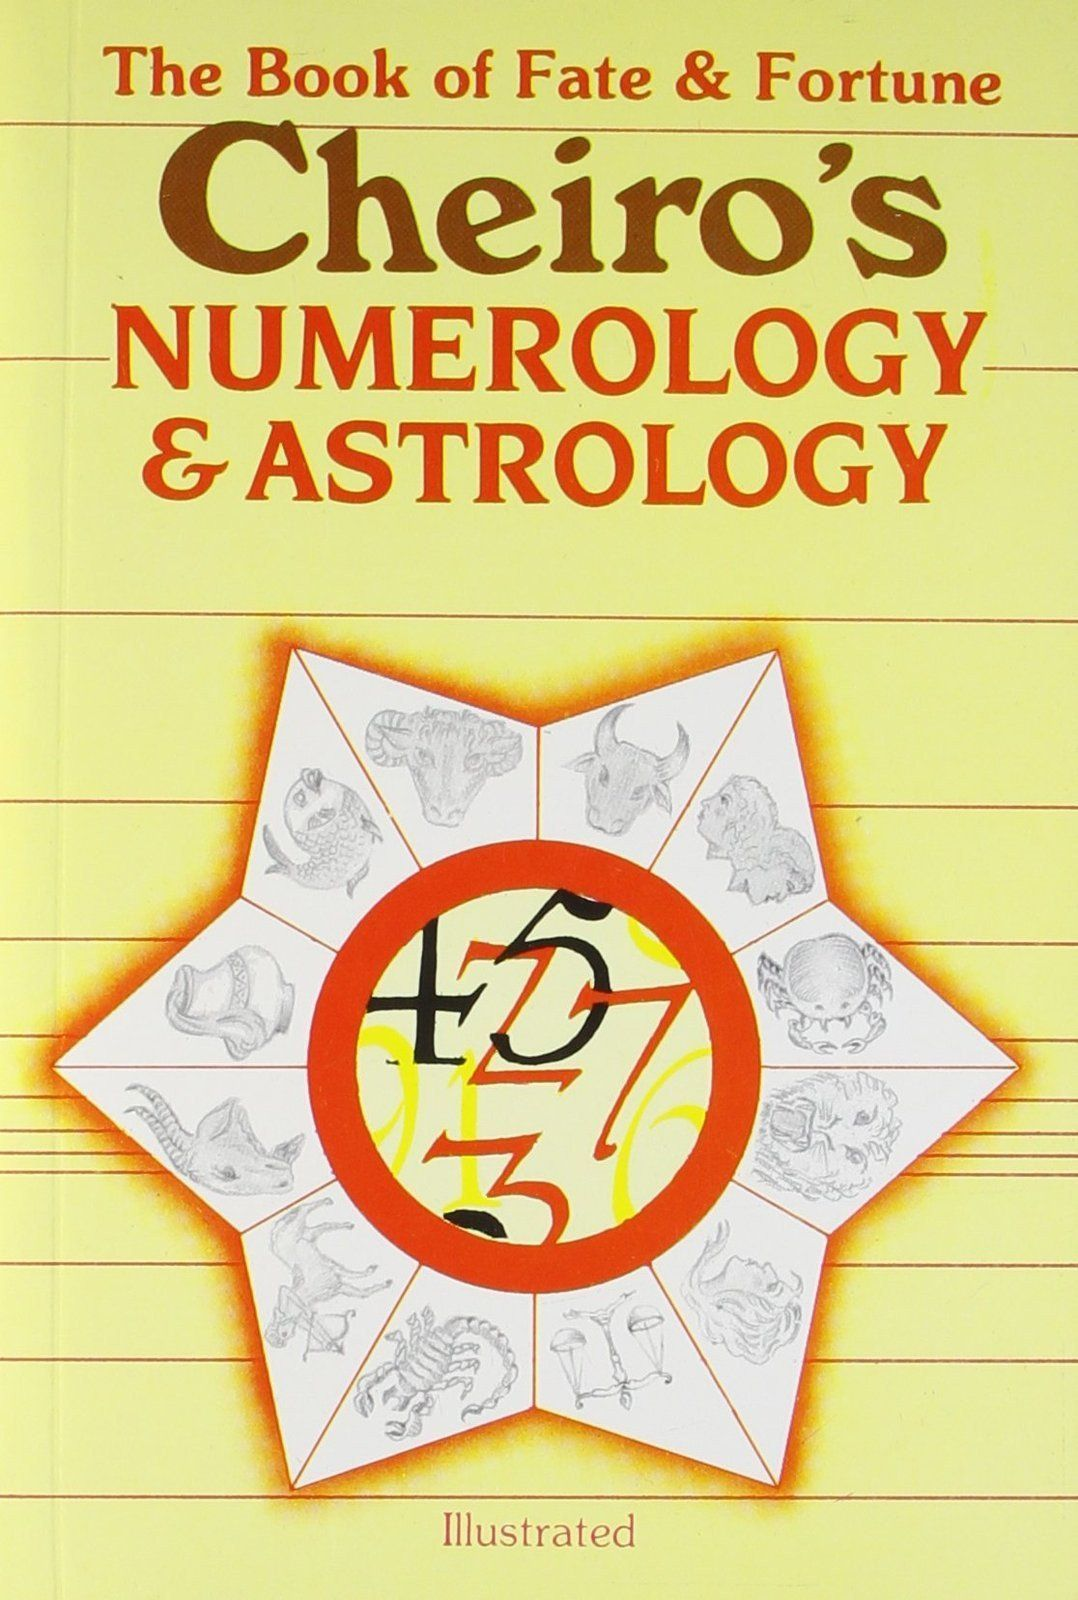 Cheiros numerology and astrology the book of fate and fortune cheiros numerology and astrology the book of fate and fortune paperback nvjuhfo Image collections